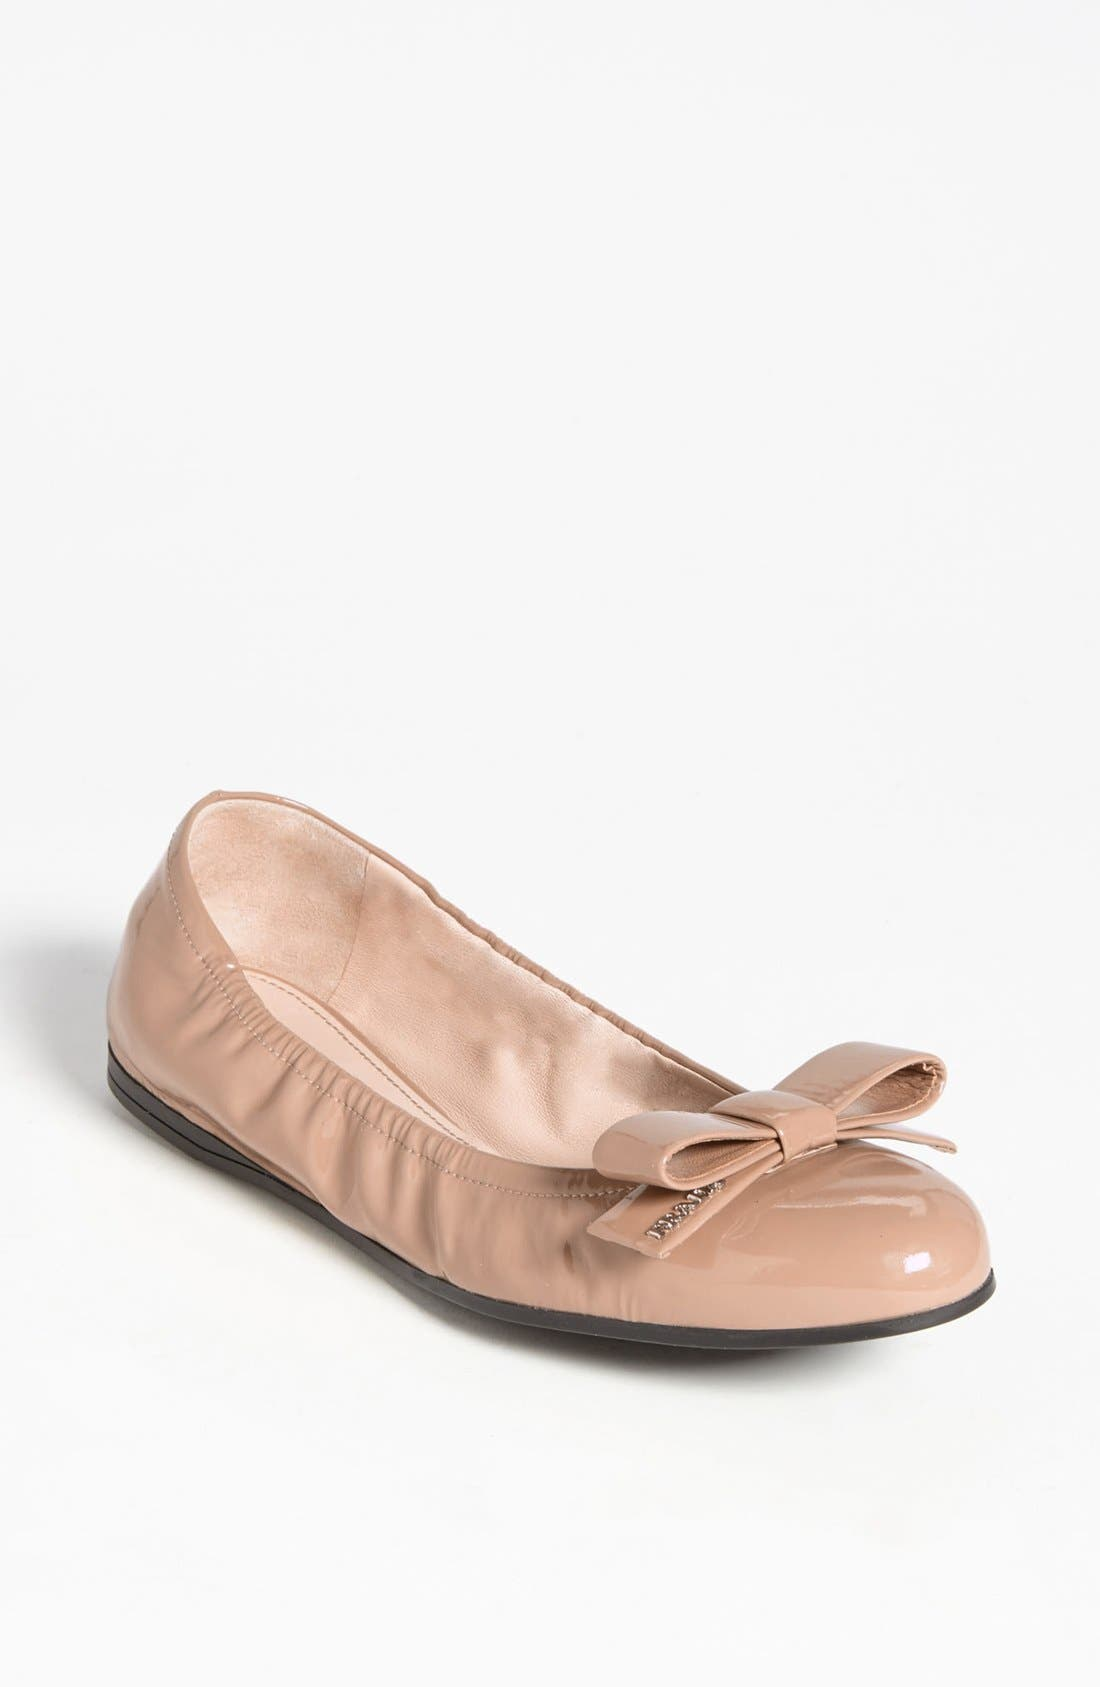 Bow Ballet Flat,                         Main,                         color, Nude